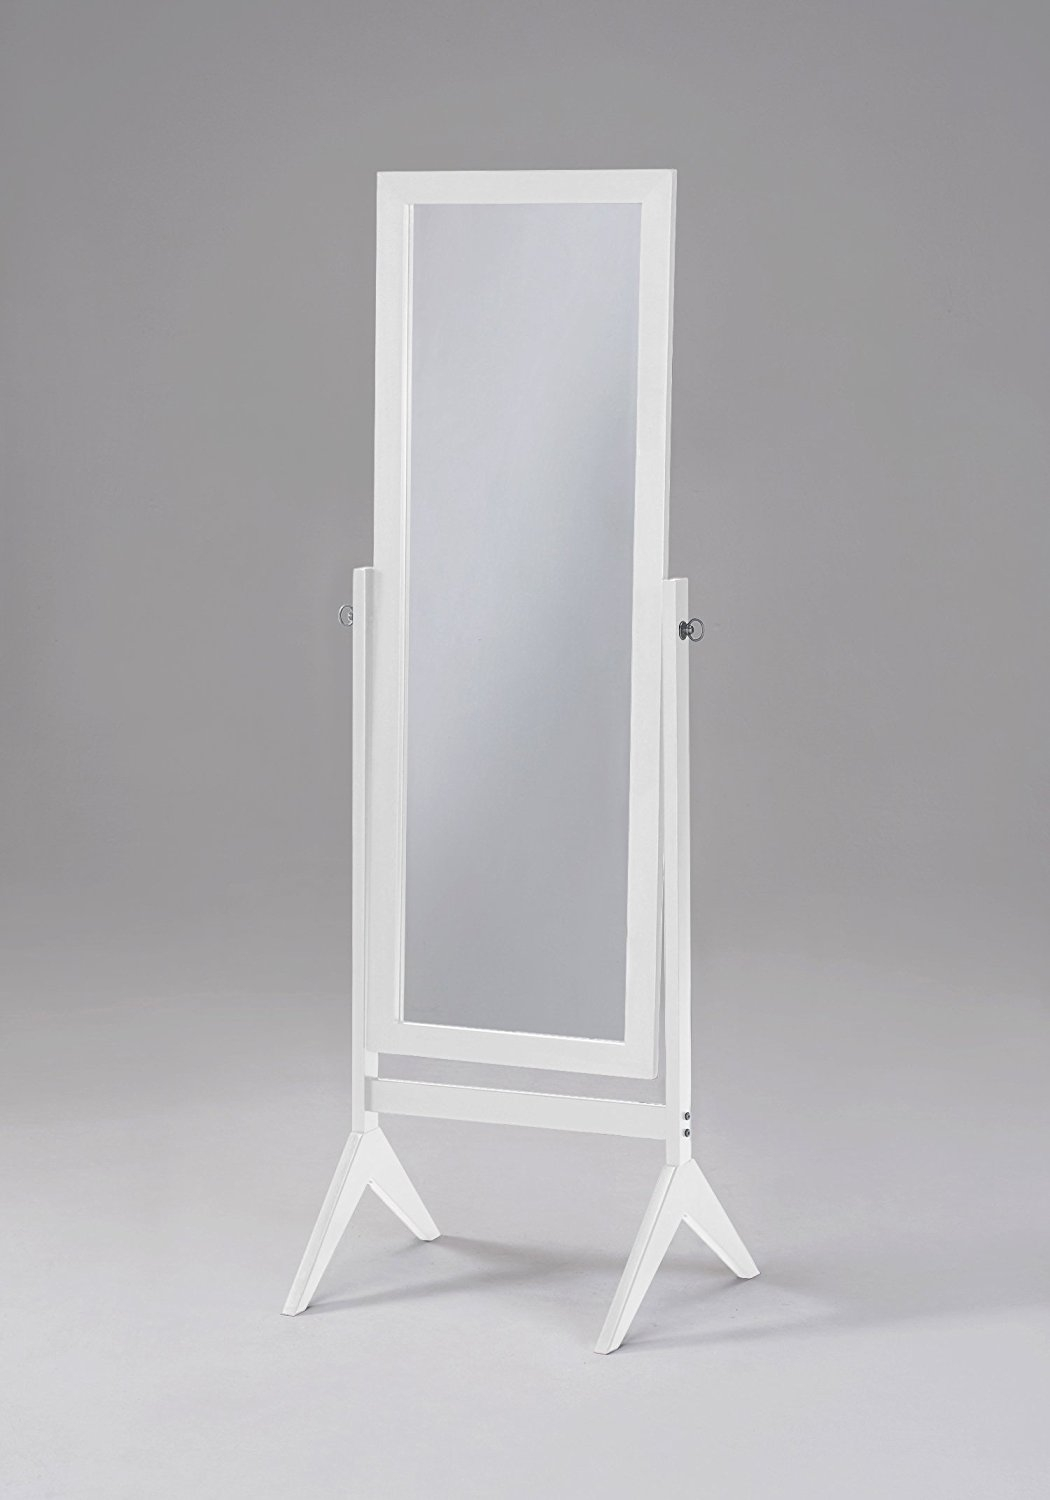 Amazon White Finish Wooden Cheval Bedroom Free Standing Floor Throughout Black Floor Standing Mirror (Image 3 of 15)